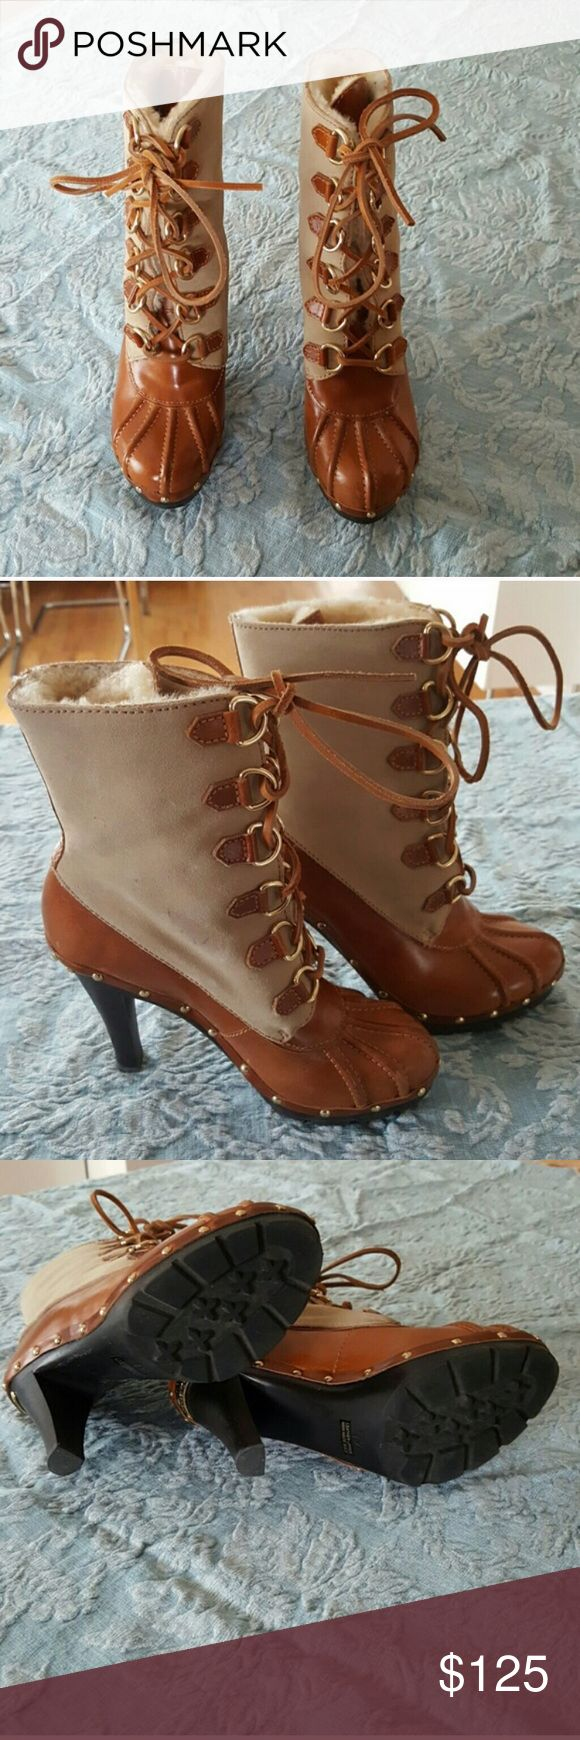 Michael Kors leather and shearling winter boots Michael Kors leather and shearling winter boots Michael Kors Shoes Heeled Boots